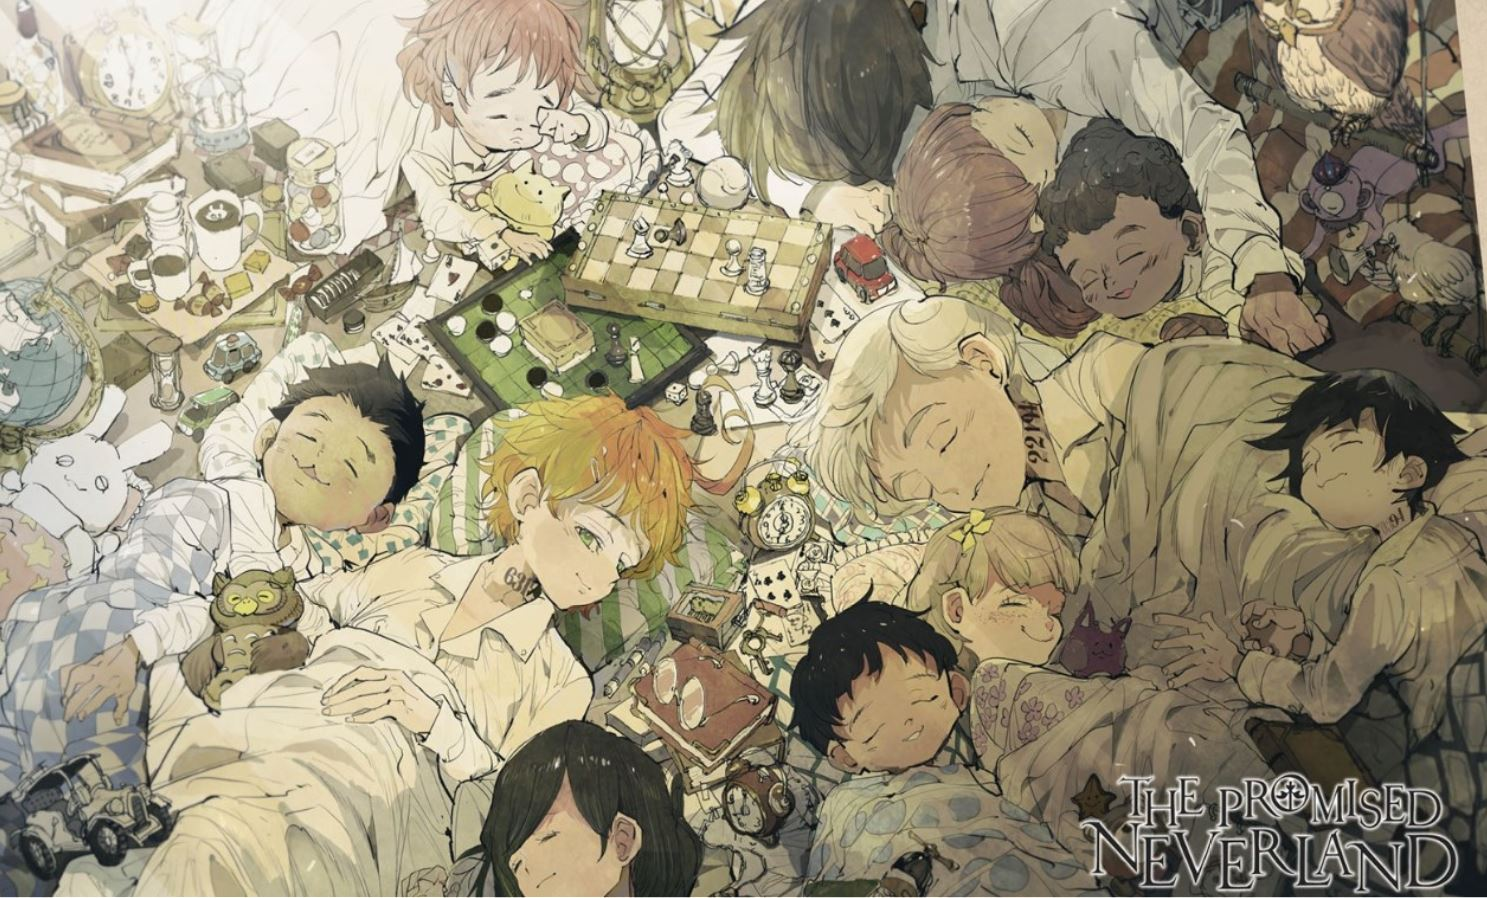 The Promised Neverland Theory: What is Emma's Promised Contract?